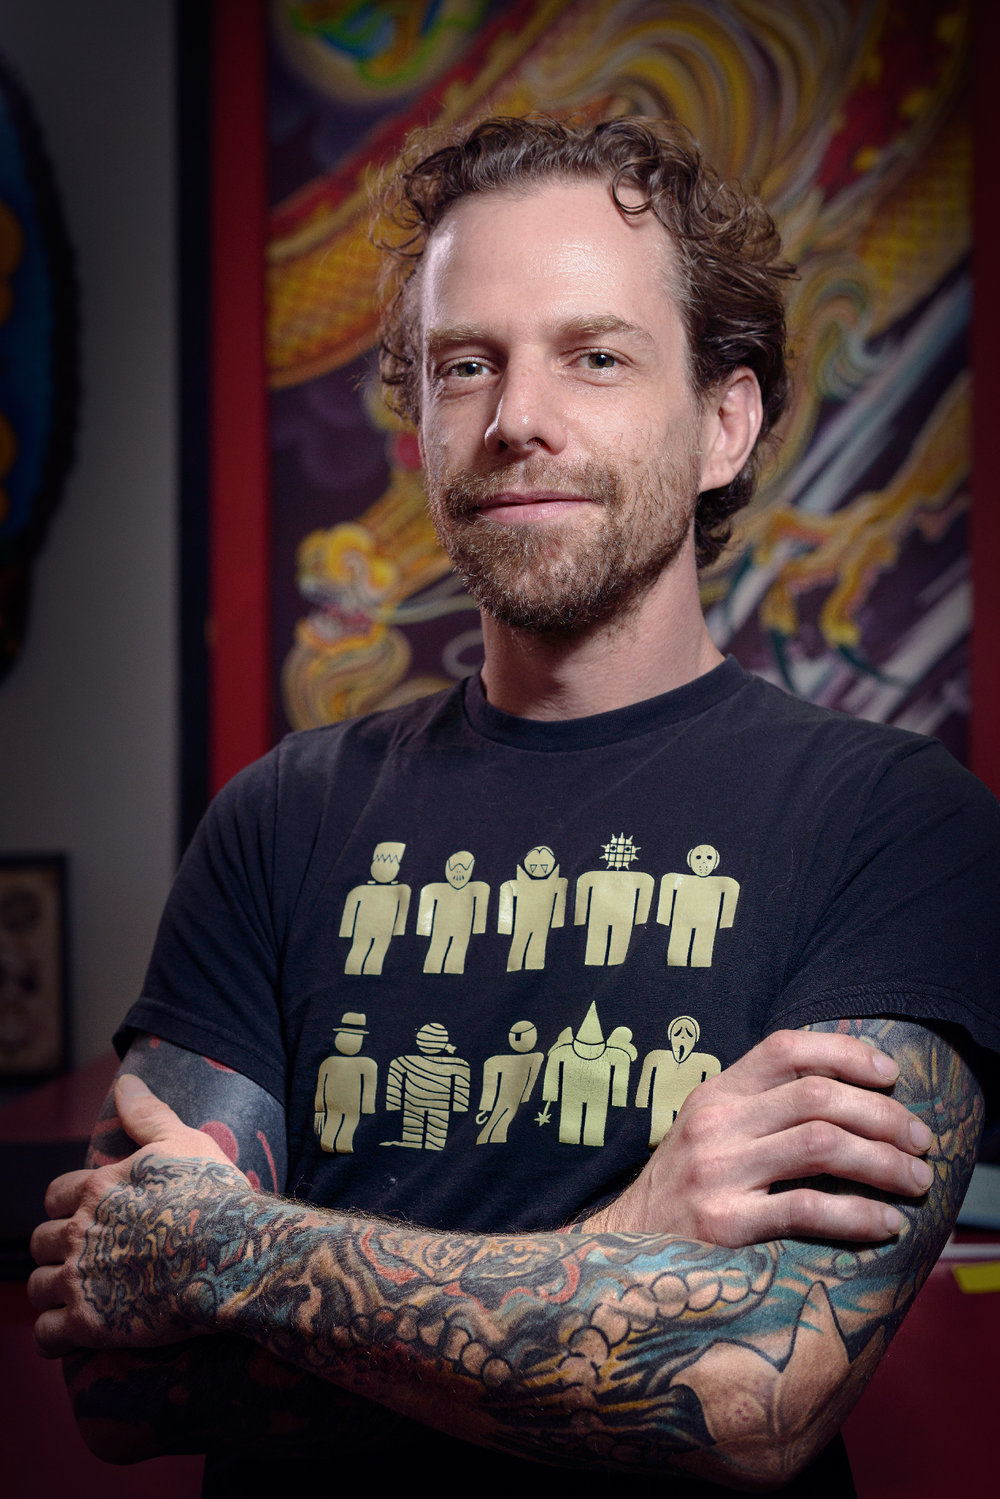 Corey - Tattoo Artist10+ years experienceCorey has a broad range of ability for many styles of tattooing.  He is fair, courteous, open to ideas, and always happy to do a tattoo!Corey specializes in both large and small designs, bold color, black & grey, and realism.